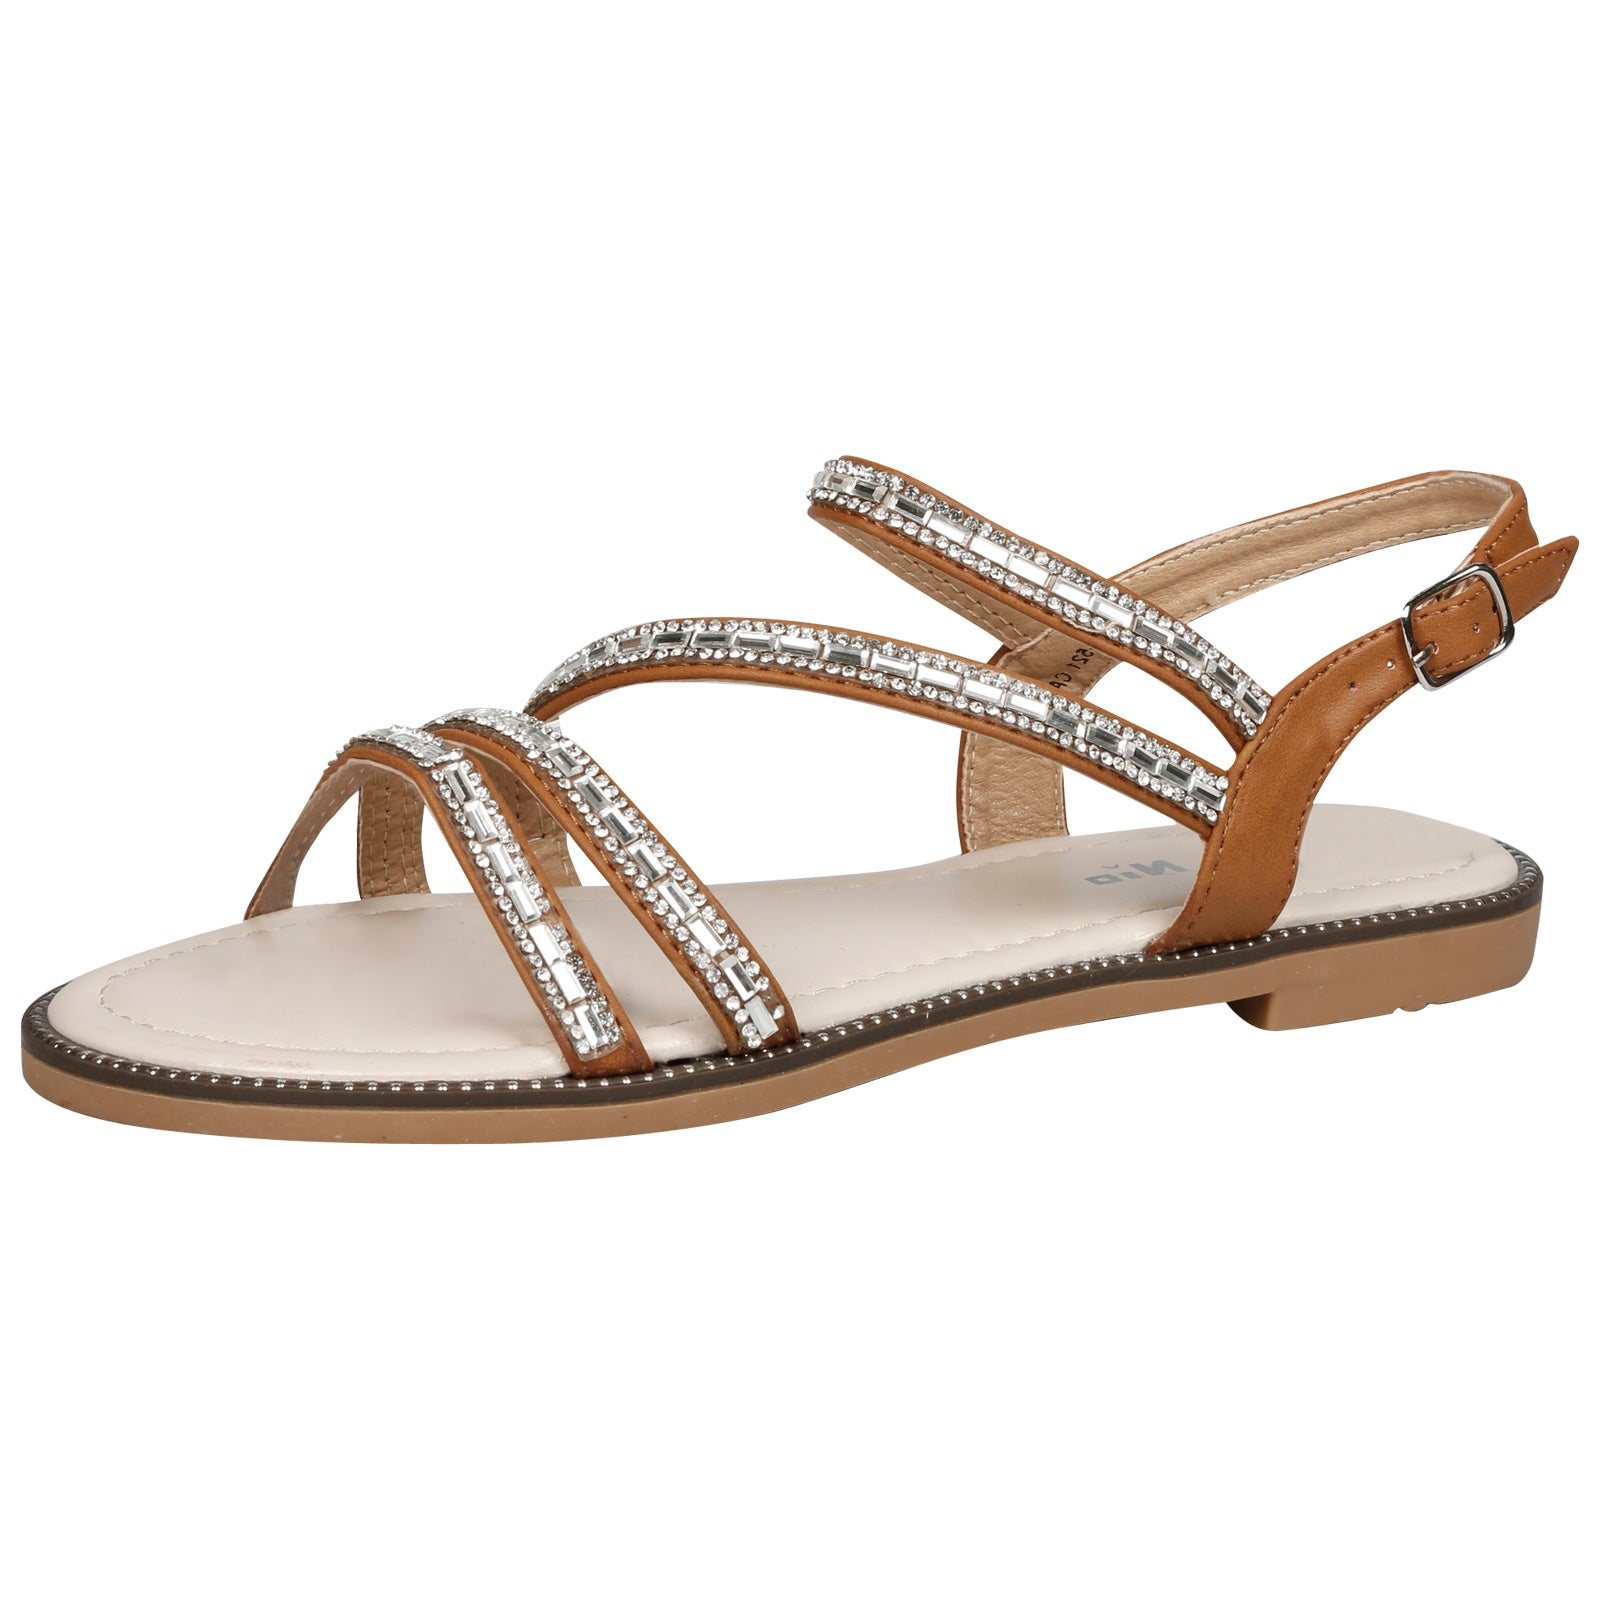 Lainey Flat Diamante Embellished Sandals in Camel Faux Leather - Feet First Fashion